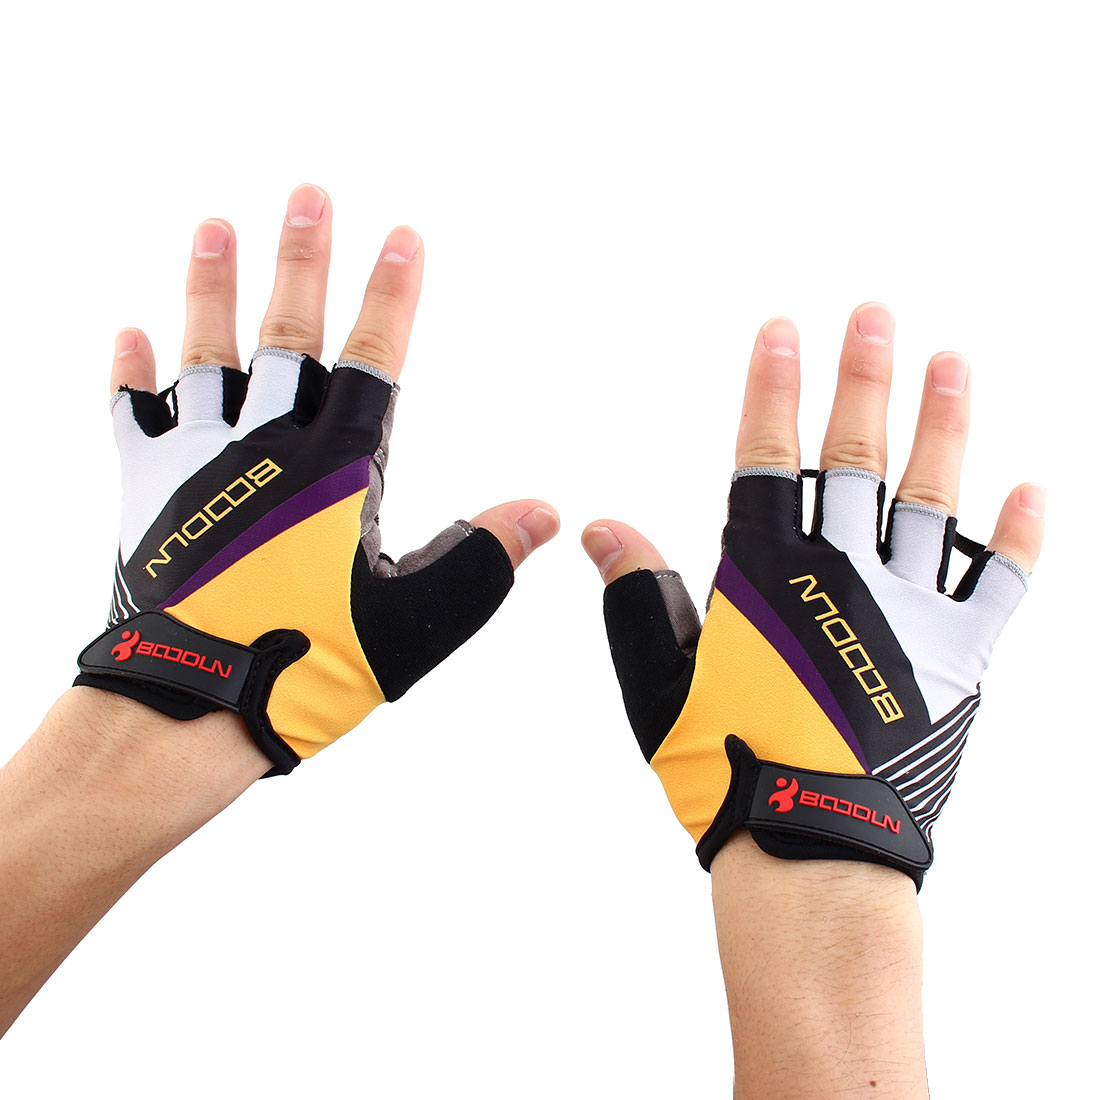 BOODUN Authorized Unisex Exercise Sports Cycling Fitness Half Finger Palm Support Gloves Yellow Size XL Pair